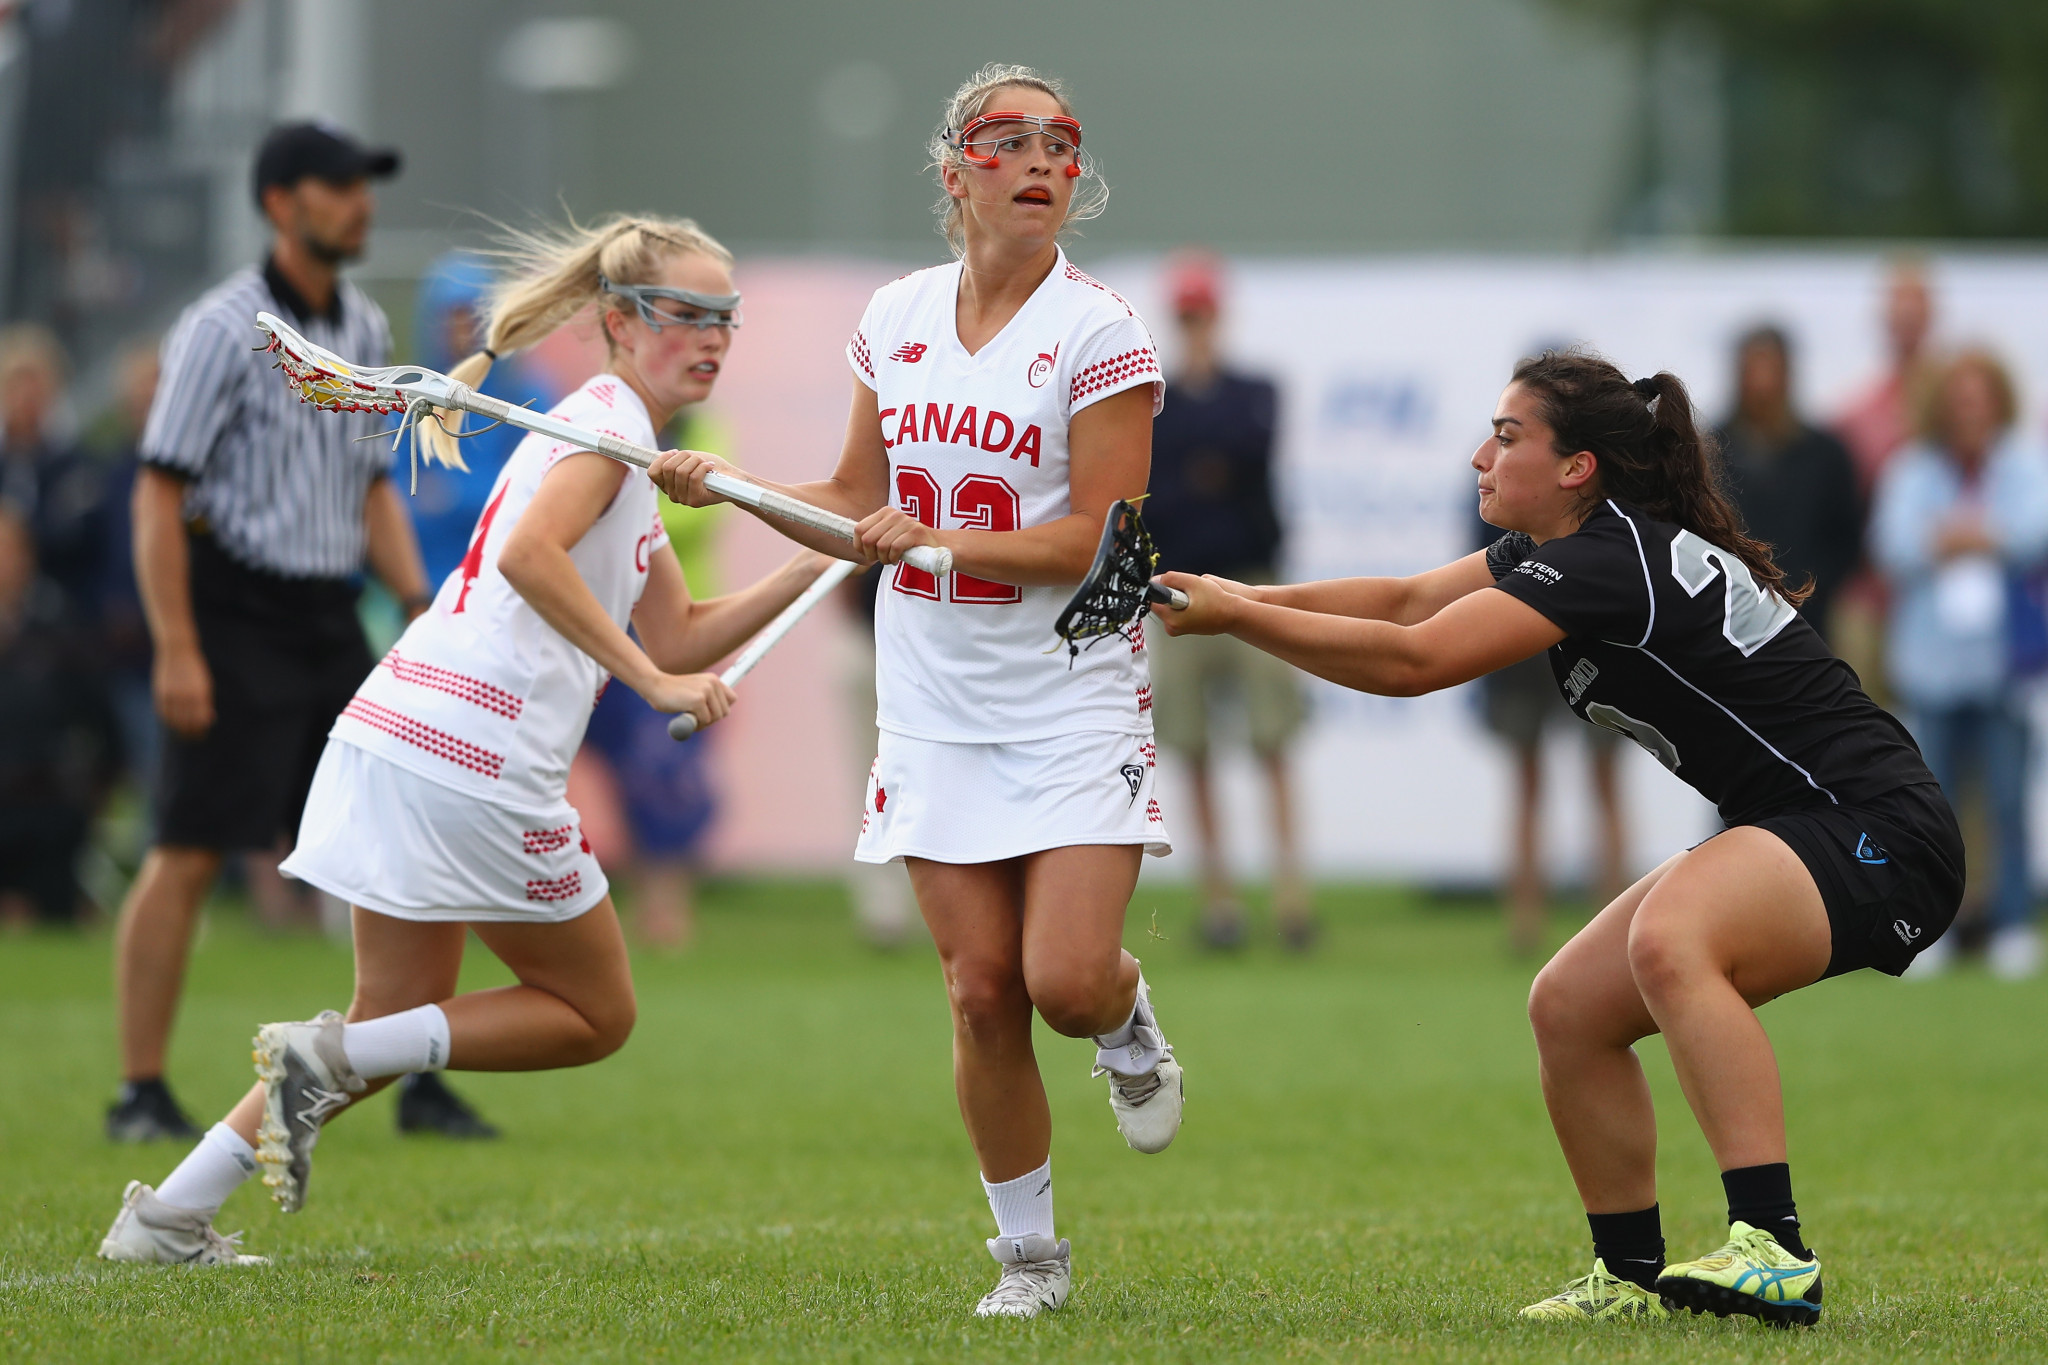 United States and Canada share spoils at World Lacrosse Super Sixes